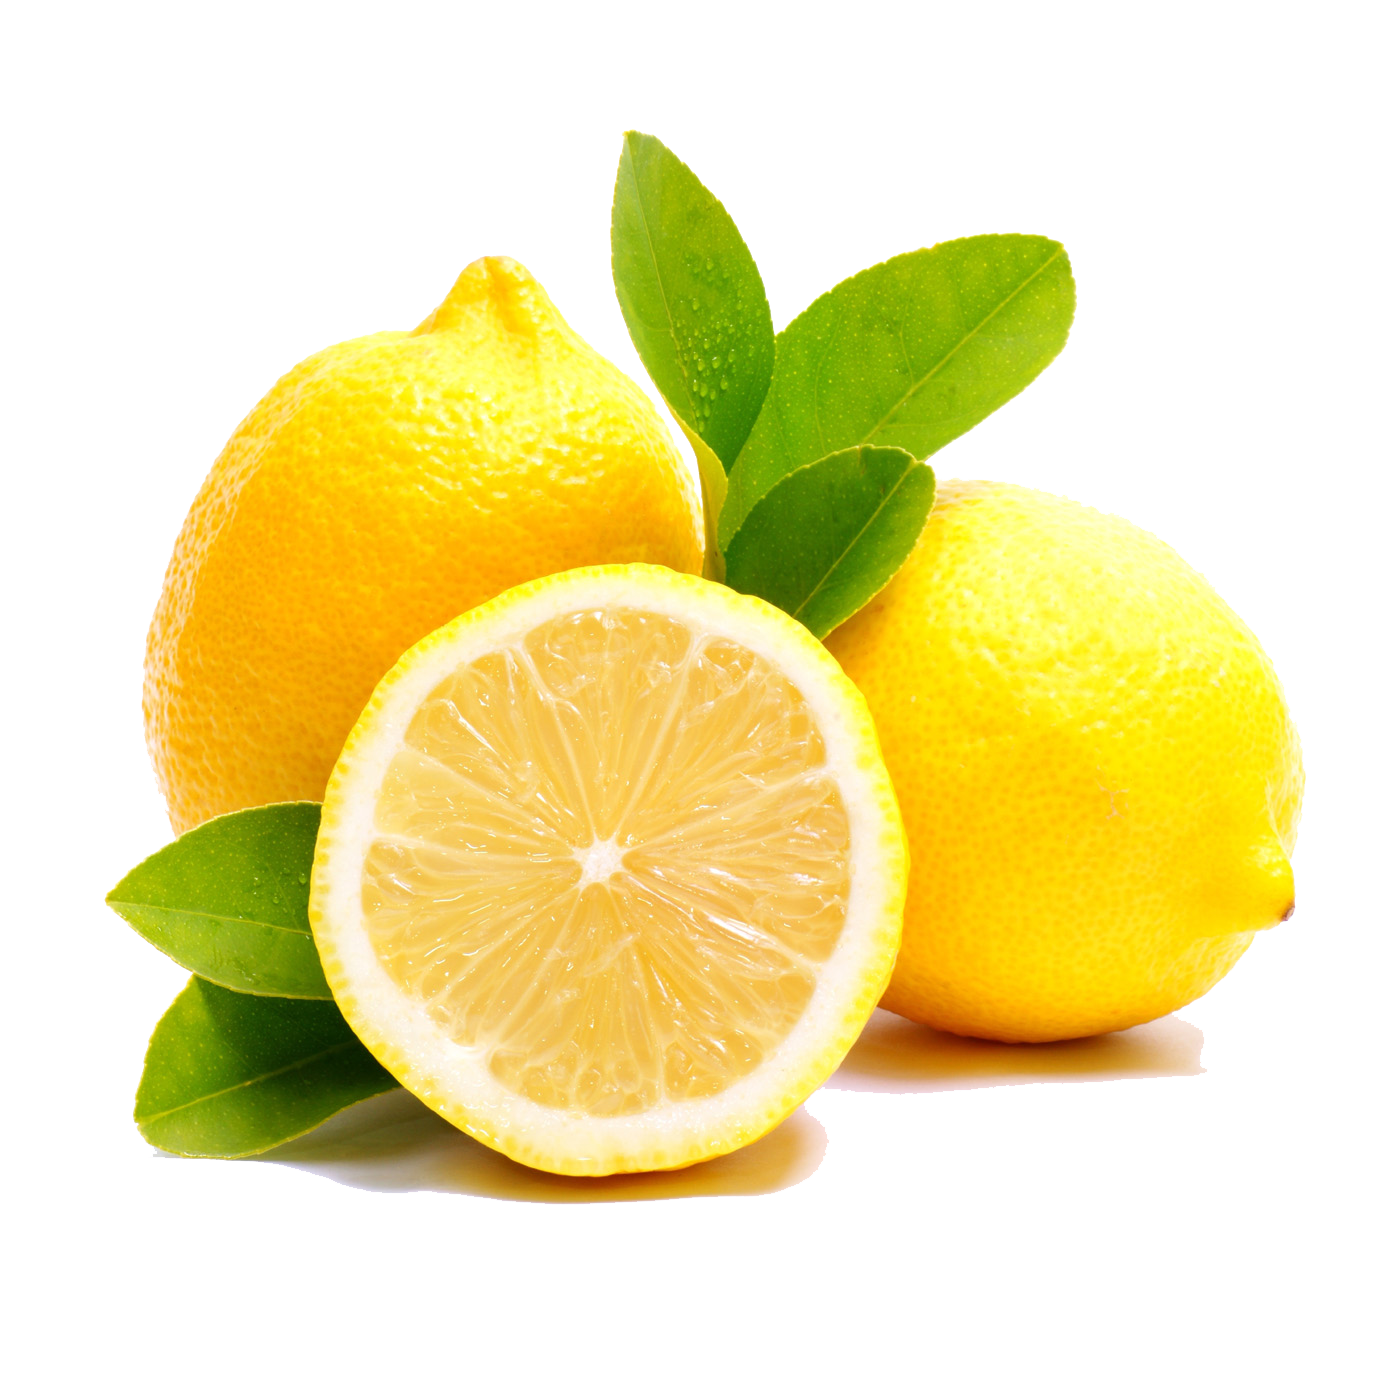 Limon vector transparent. Lemon hd png images